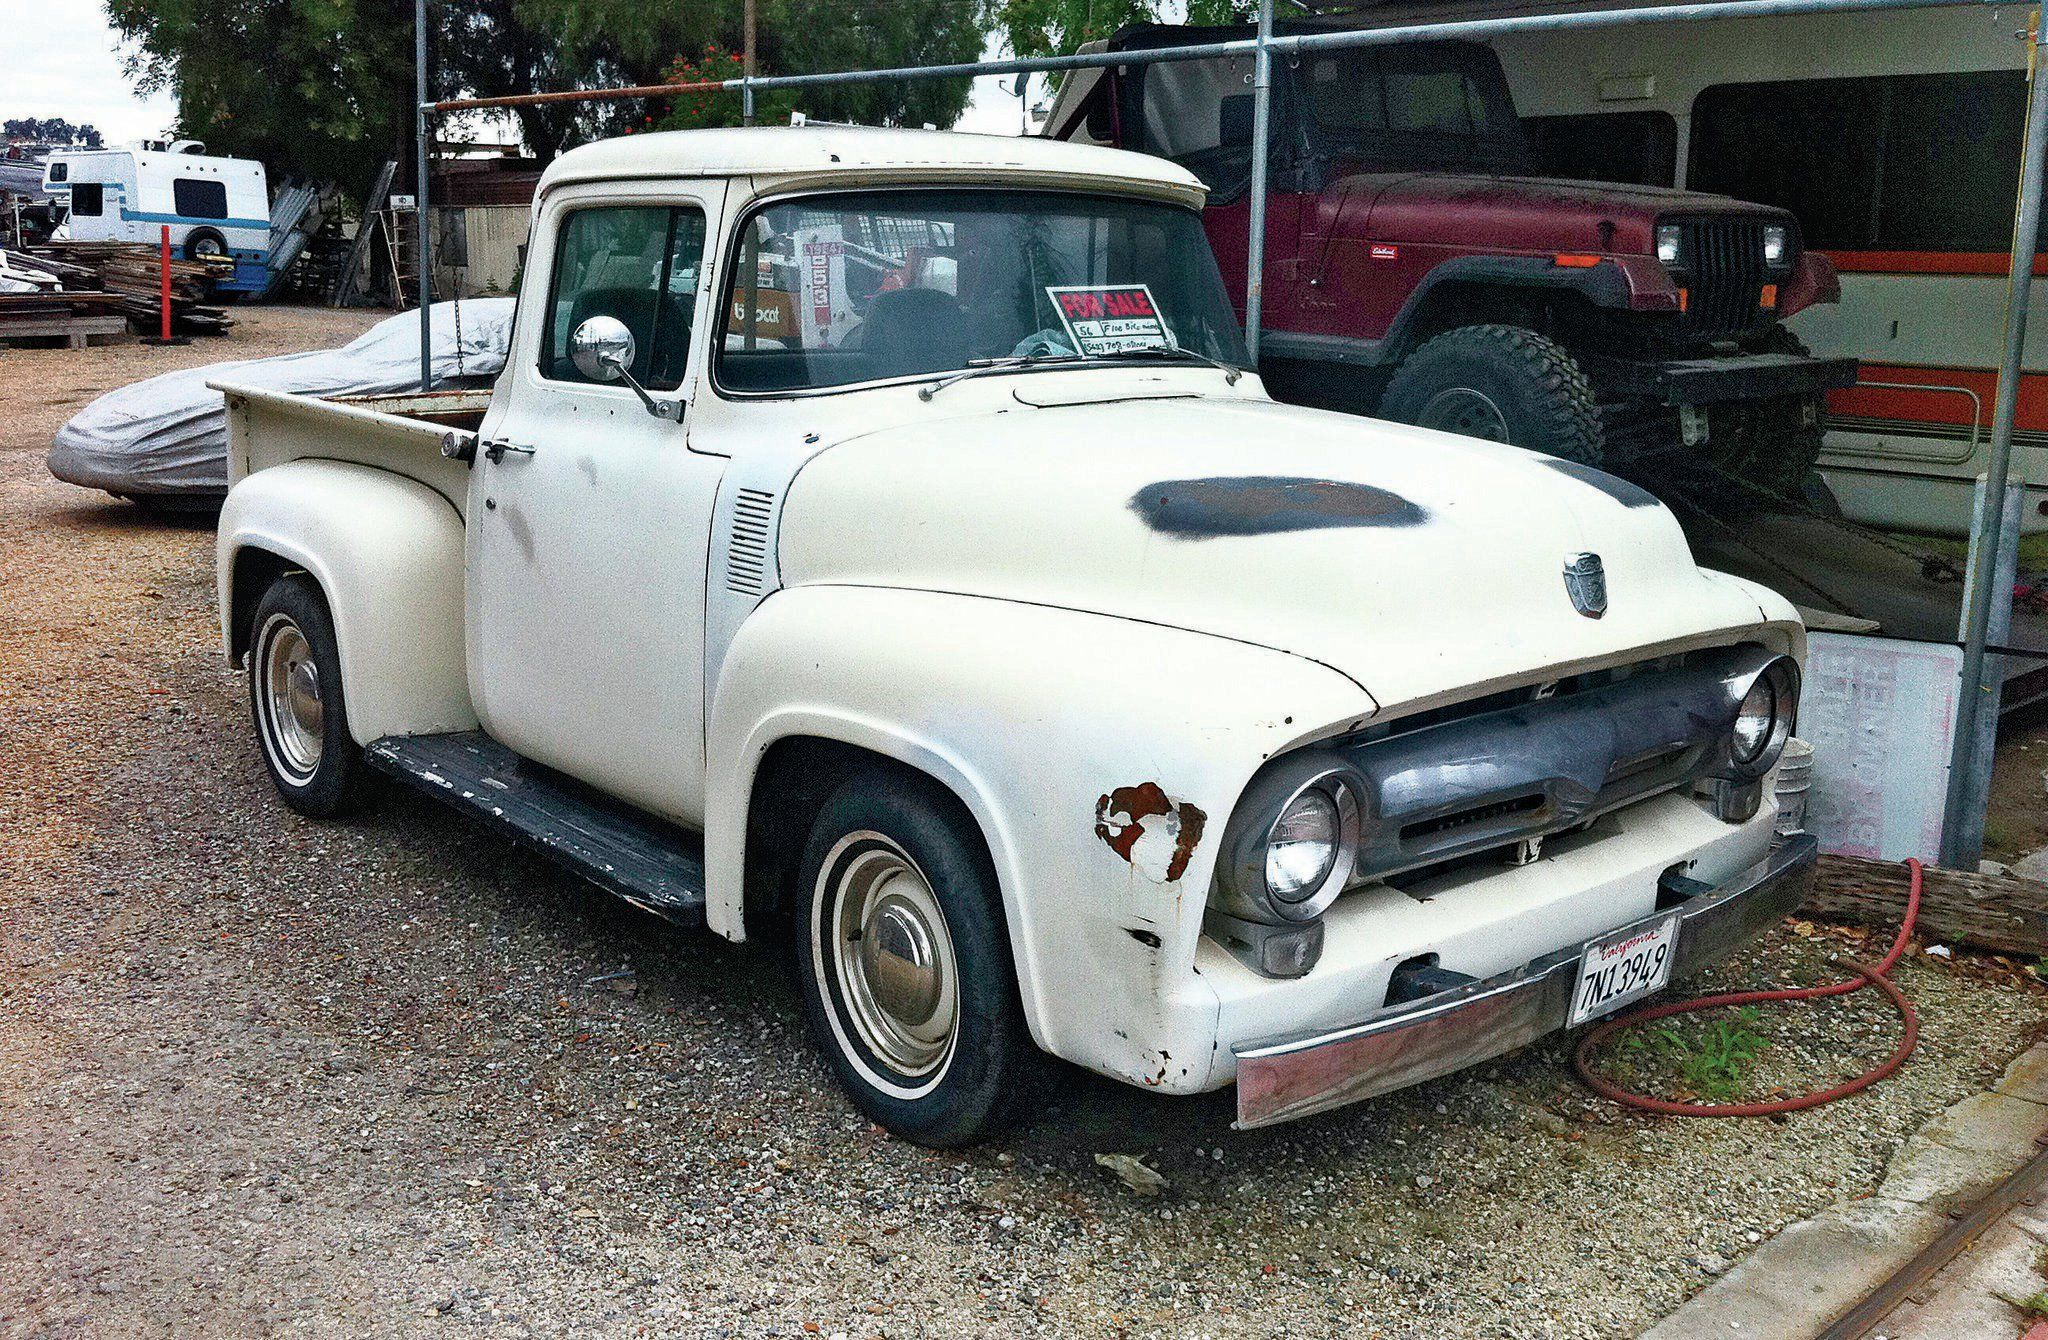 Discover your next antique ford or mercury pickup truck on our vehicles for sale page